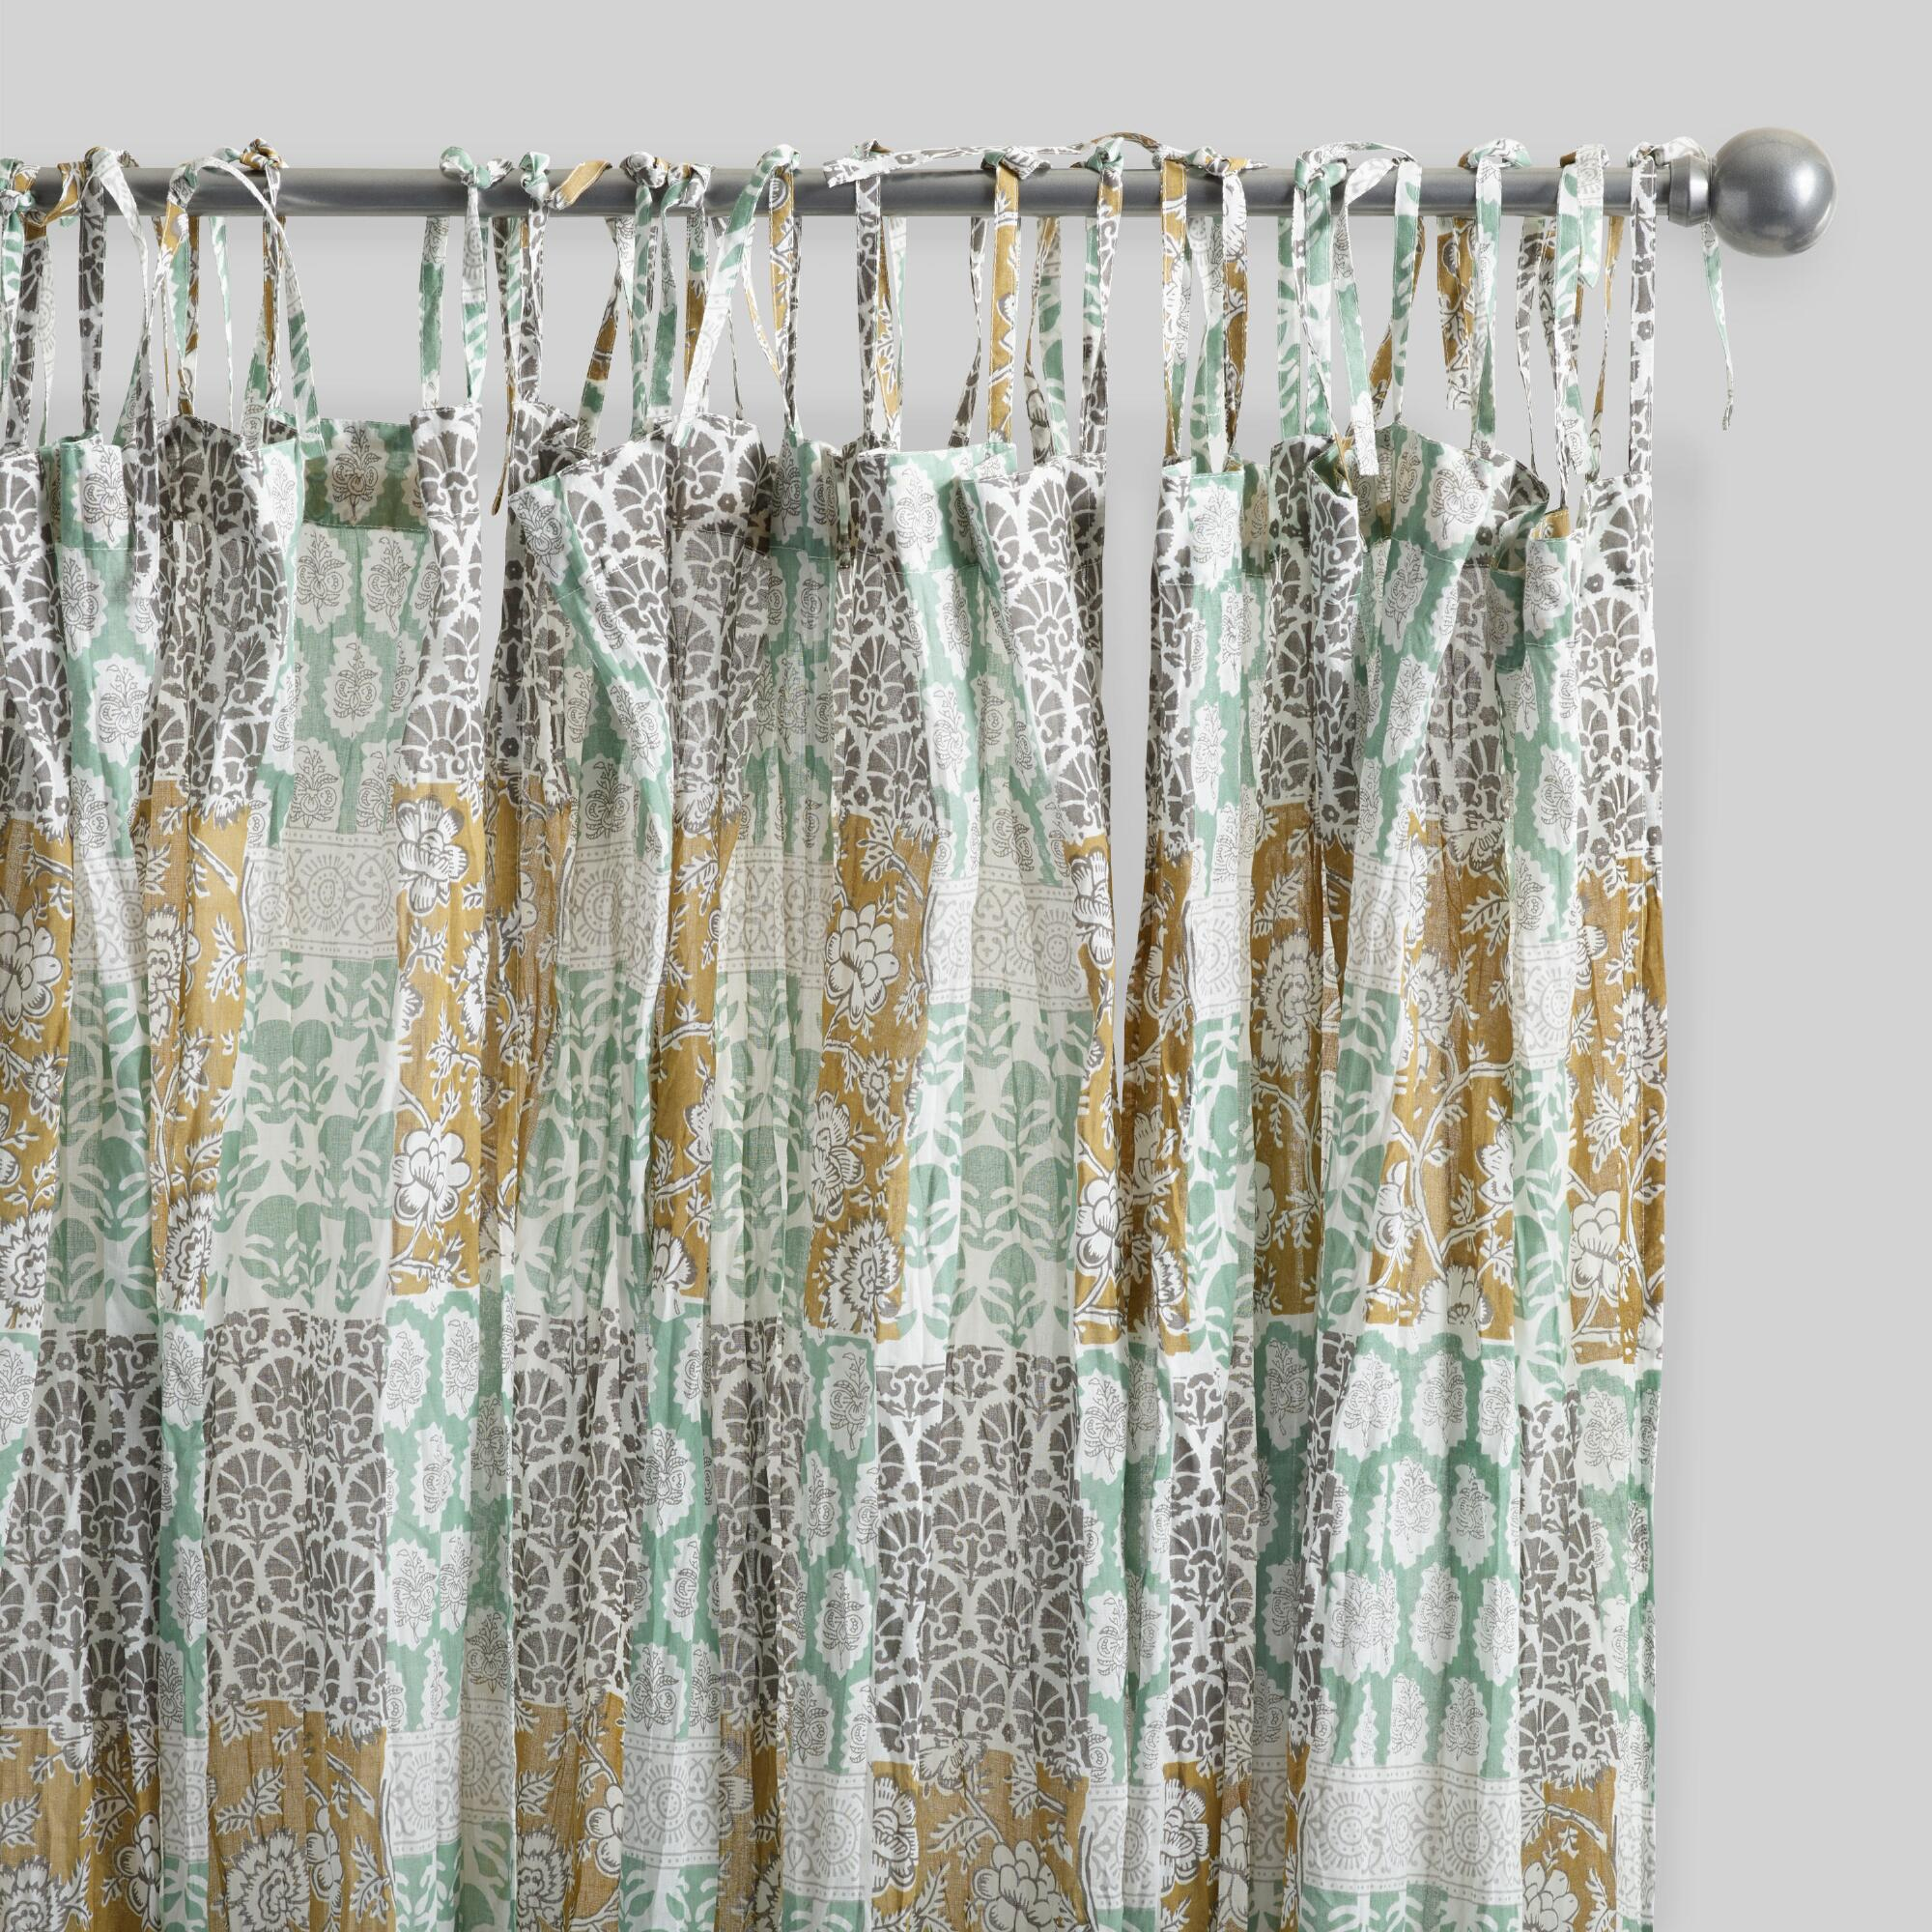 Boho Patch Crinkle Cotton Voile Curtains Set Of 2 World